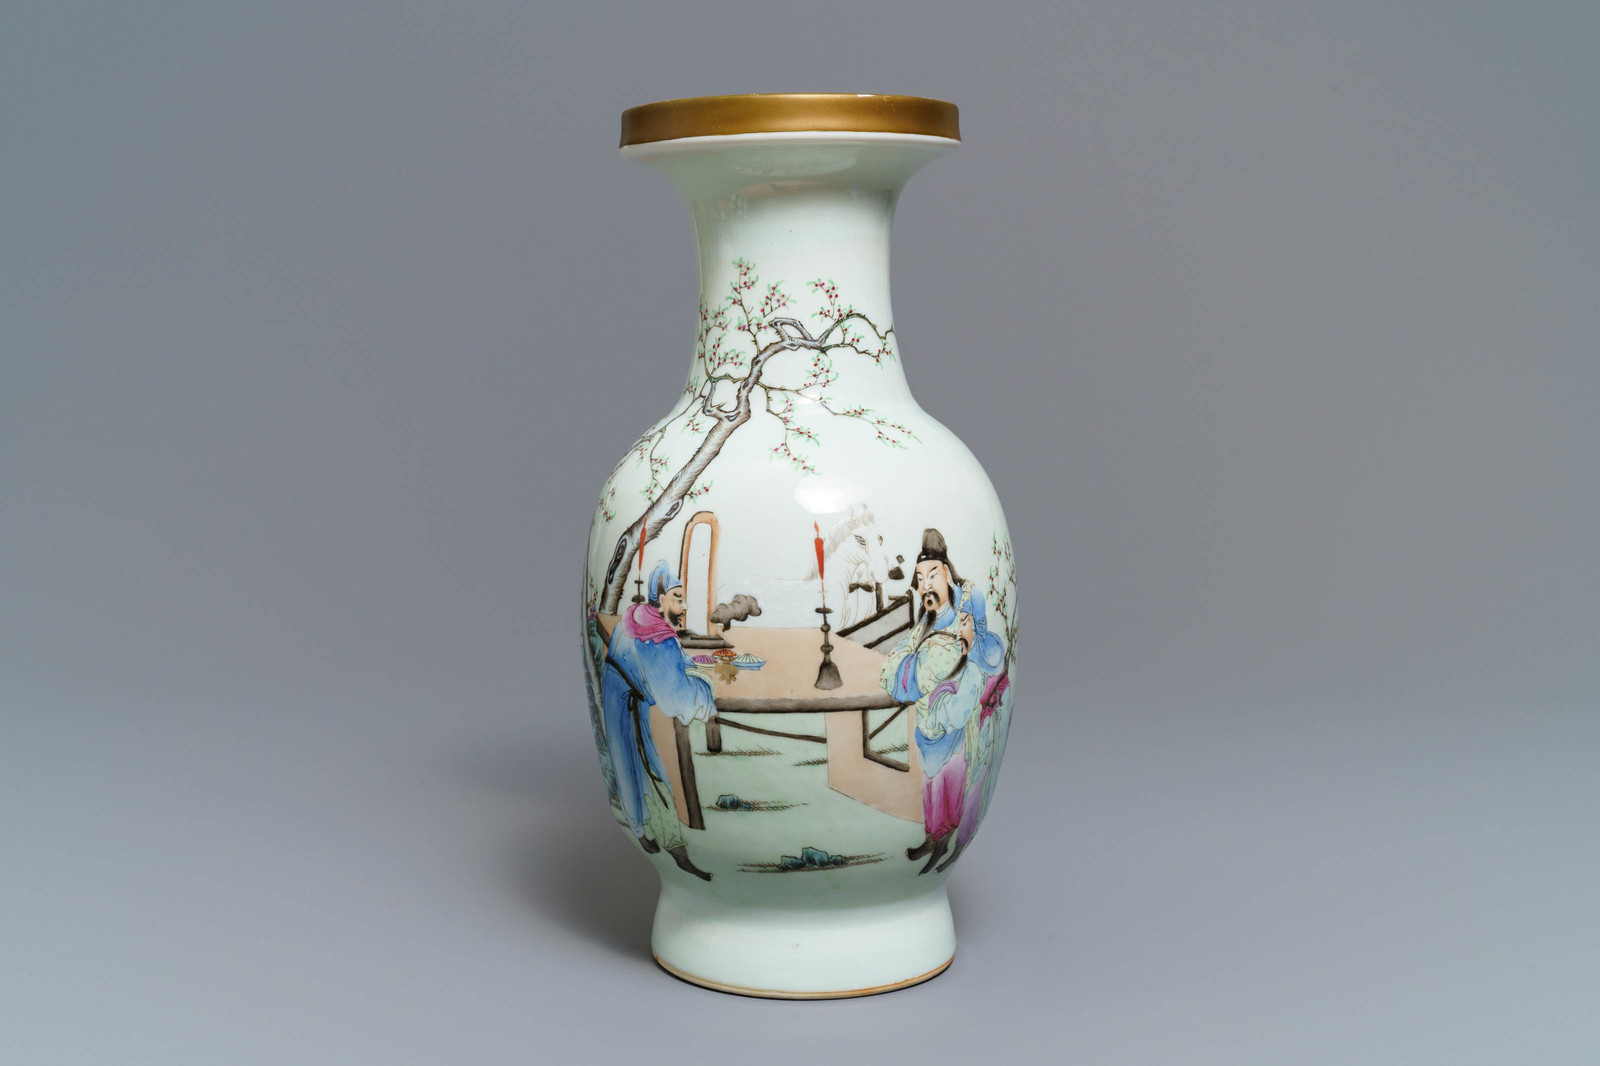 Lot 7 - A Chinese famille rose vase with figures in a garden, Qianlong mark, Republic, 20th C.